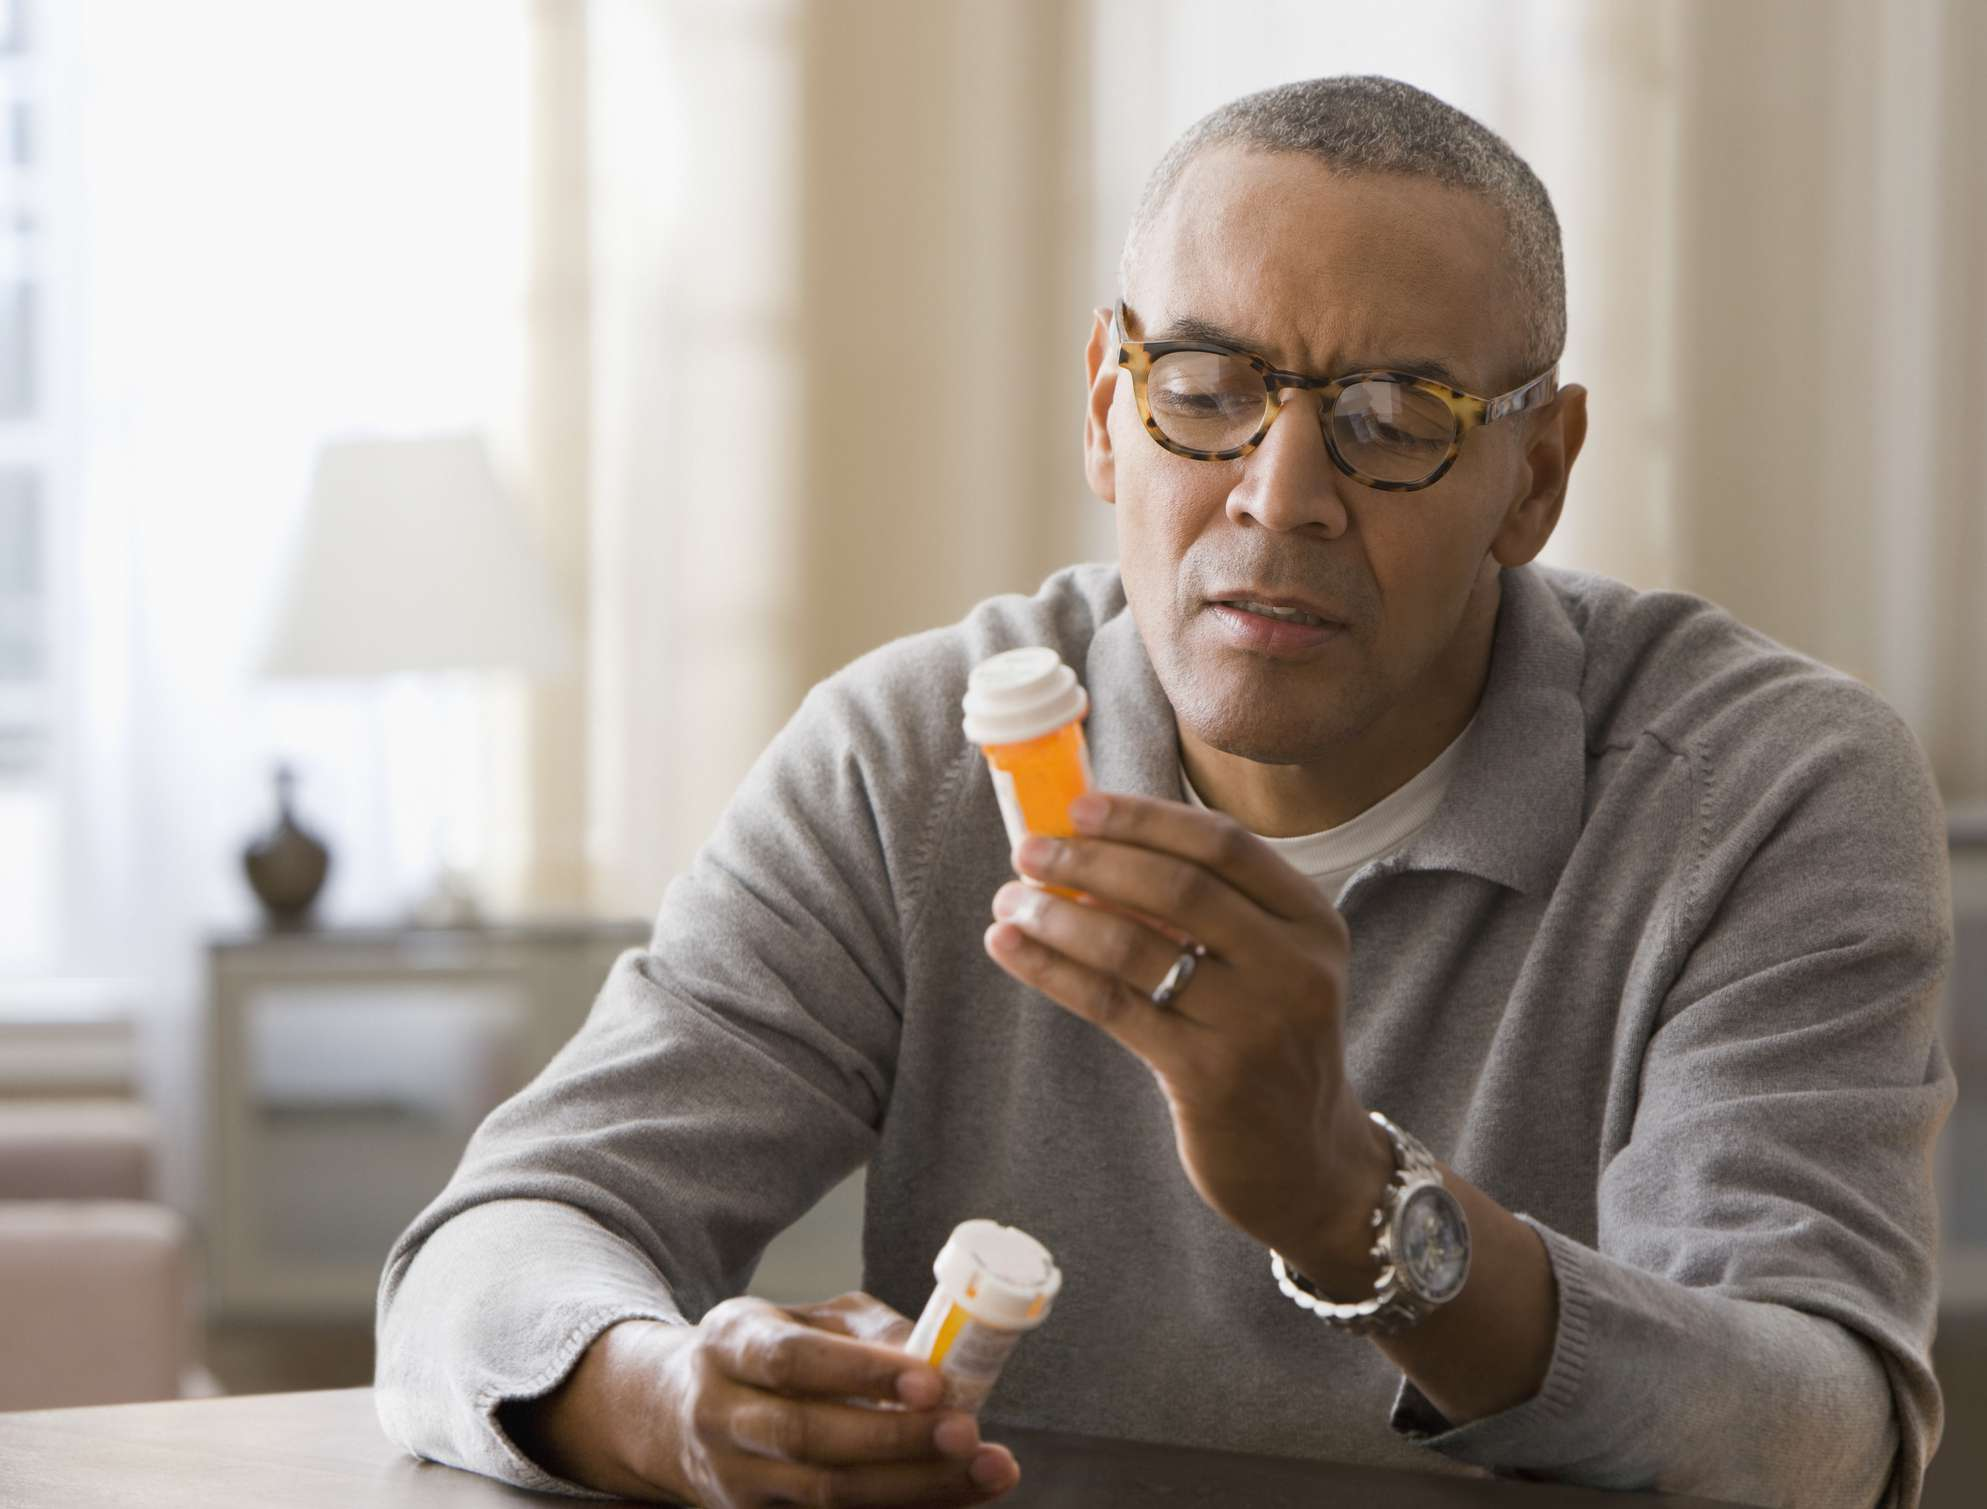 A middle-aged Black man with glasses reading the label on a prescription bottle of medication.